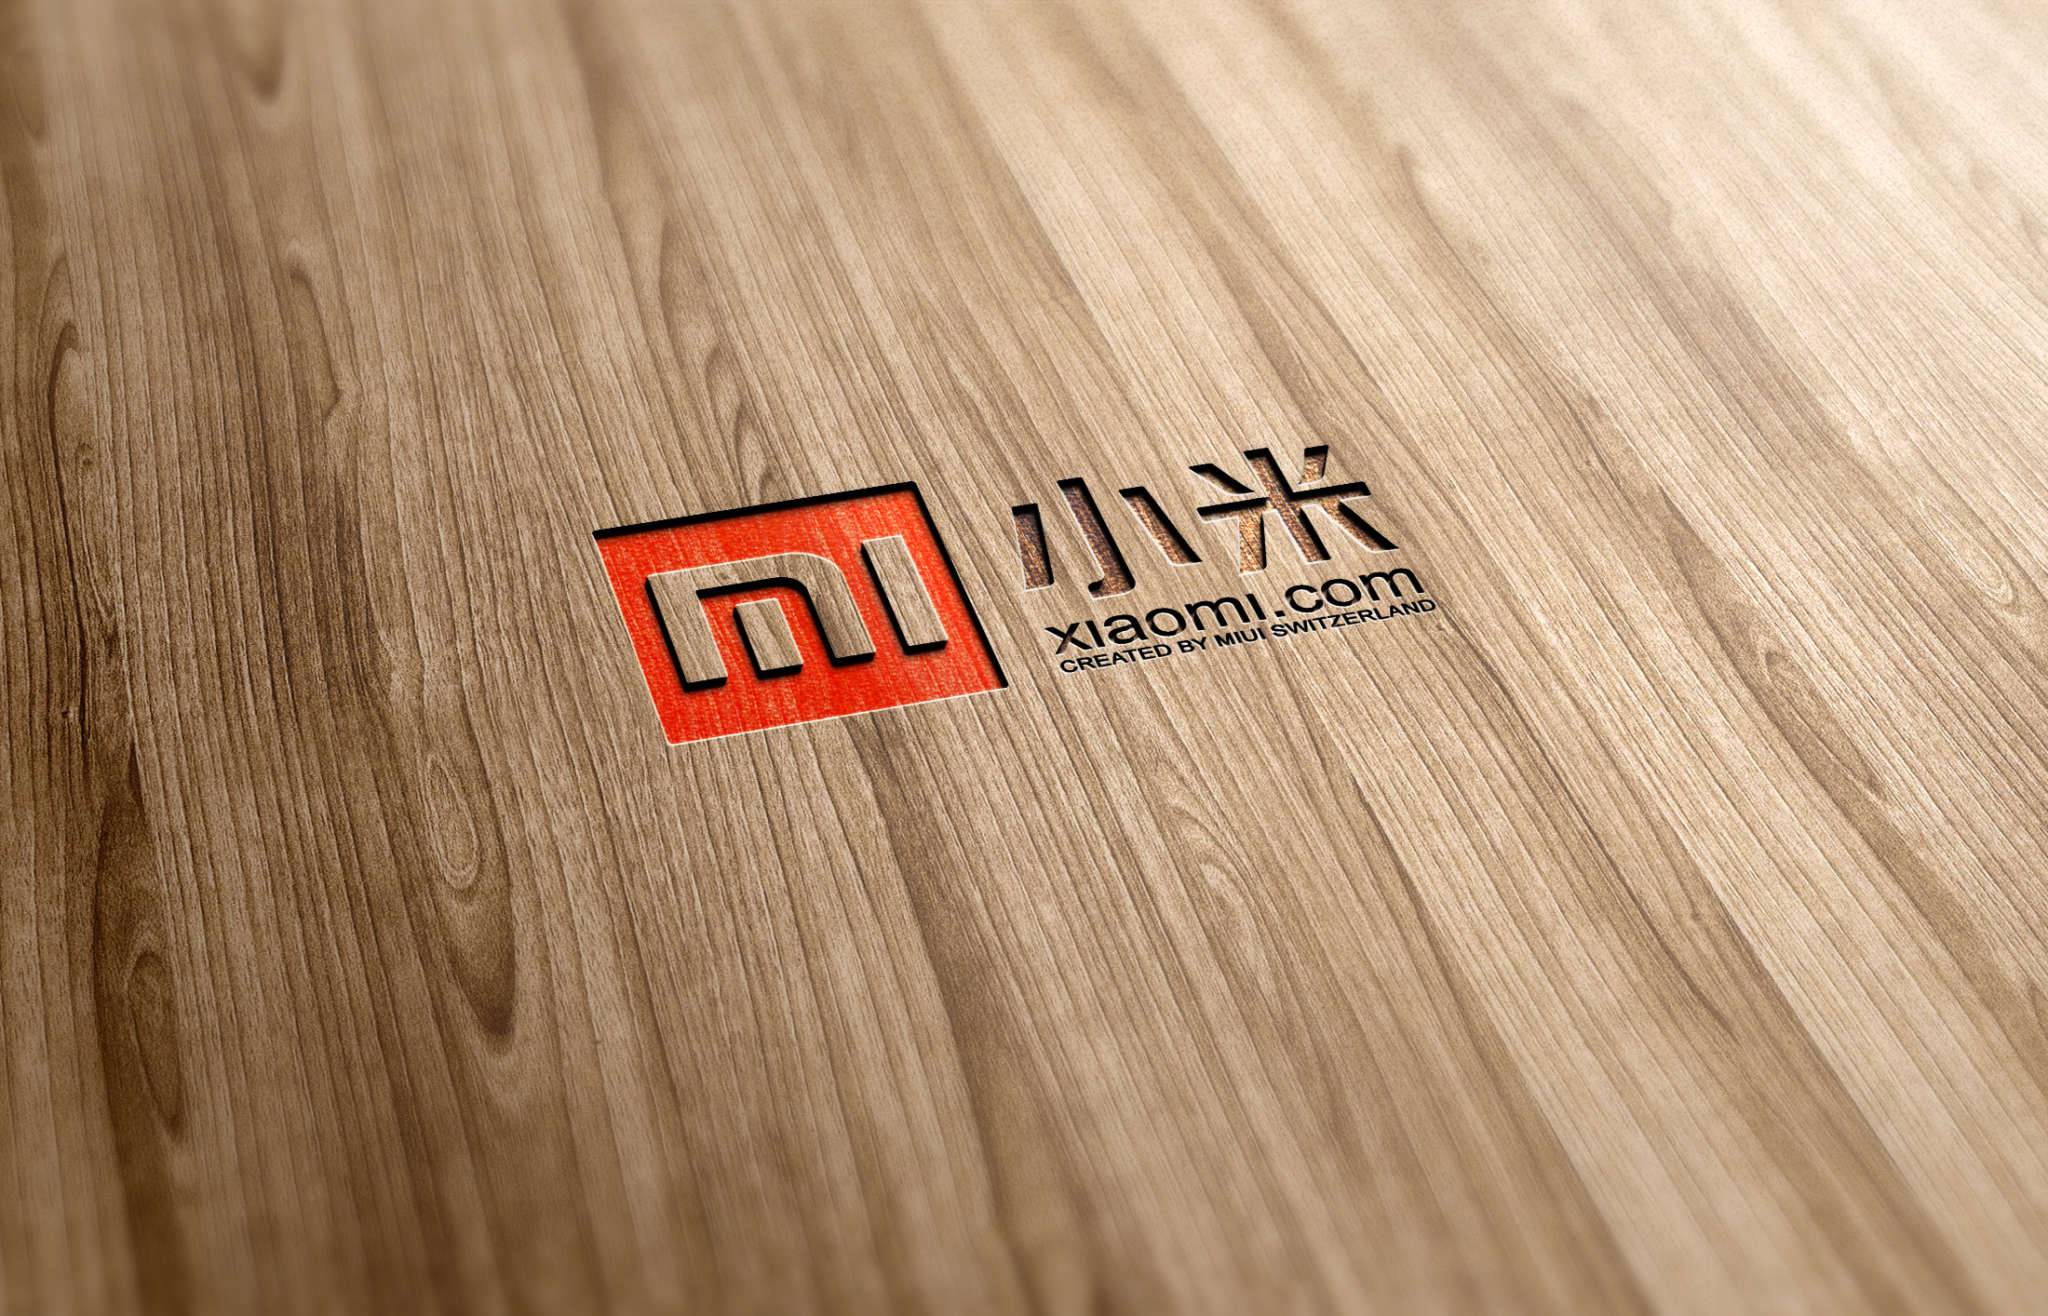 xiaomi_by_xunil75-d5dot3g